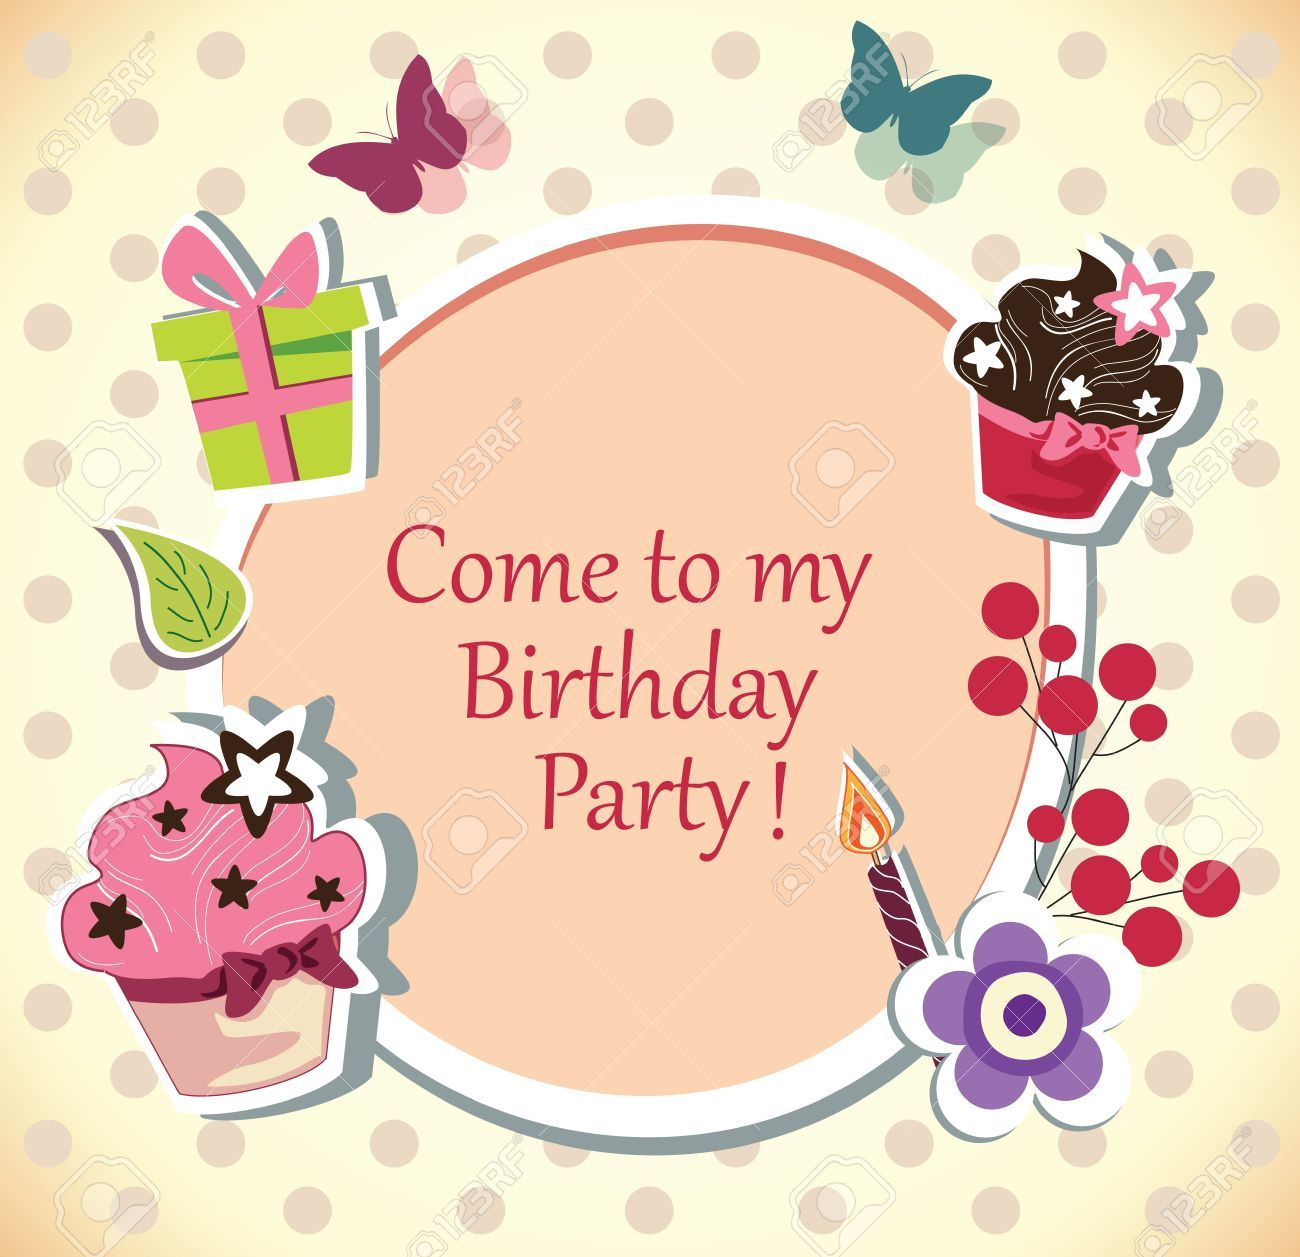 Free birthday party invitation clipart 3 » Clipart Portal.